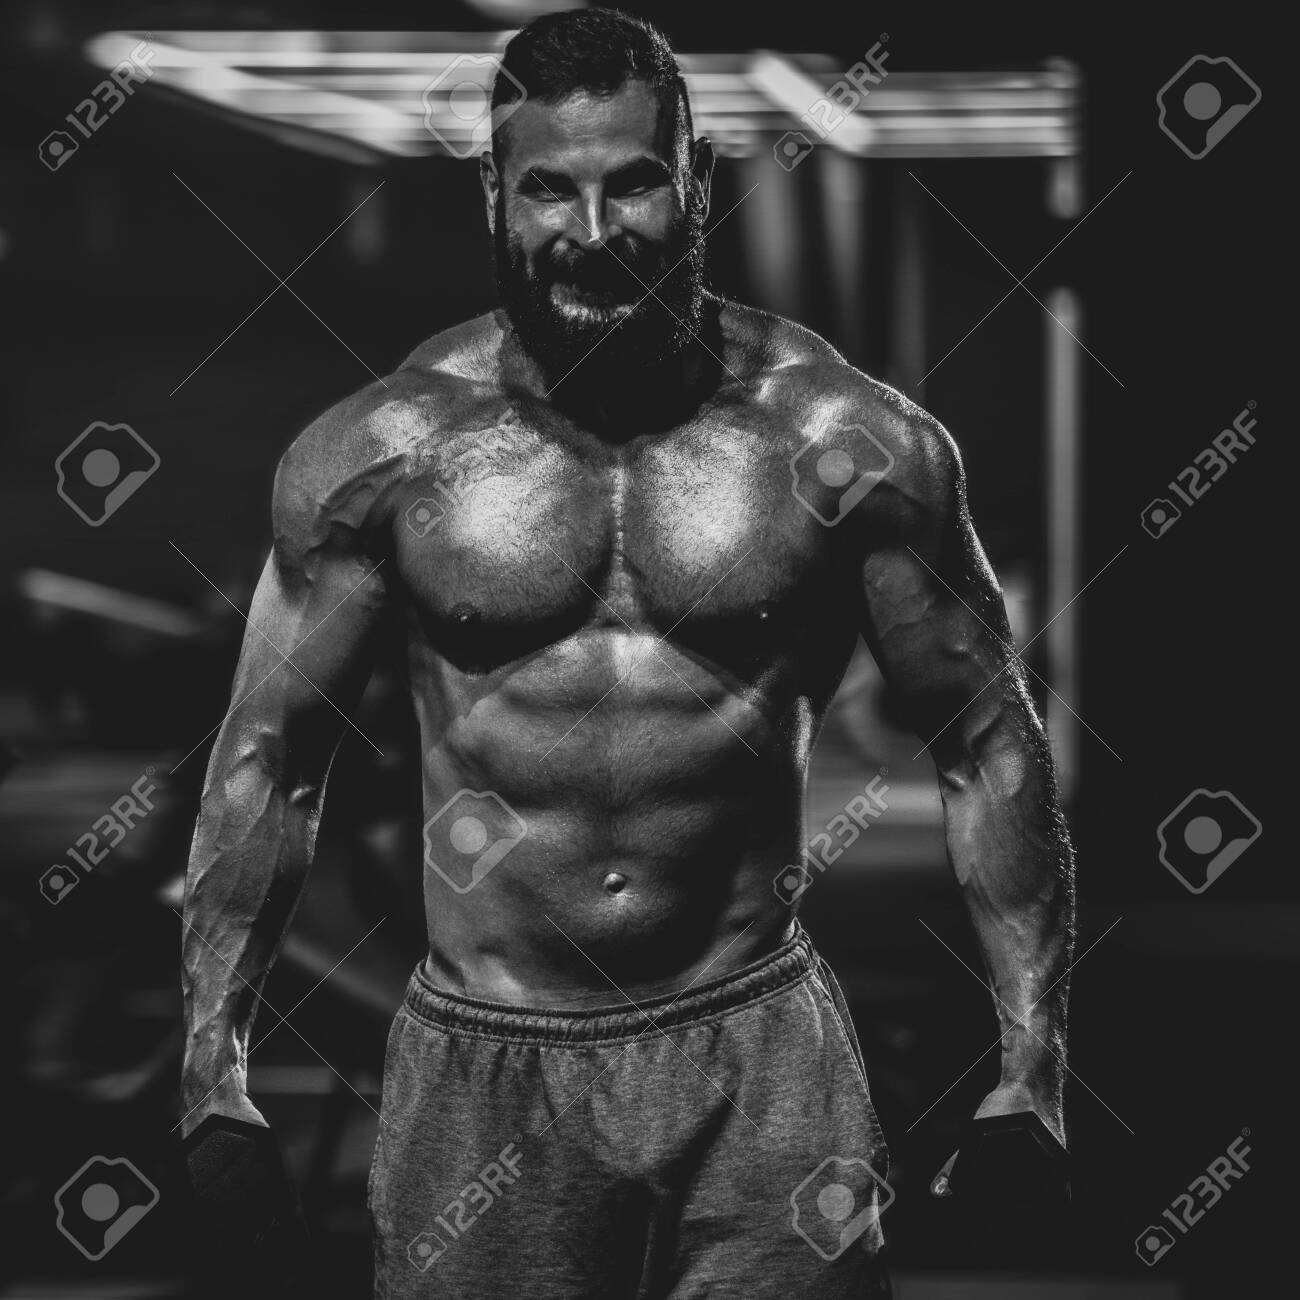 Young powerful fit man doing biceps lifting with dumbbells, dramatic black and white image - 139936563